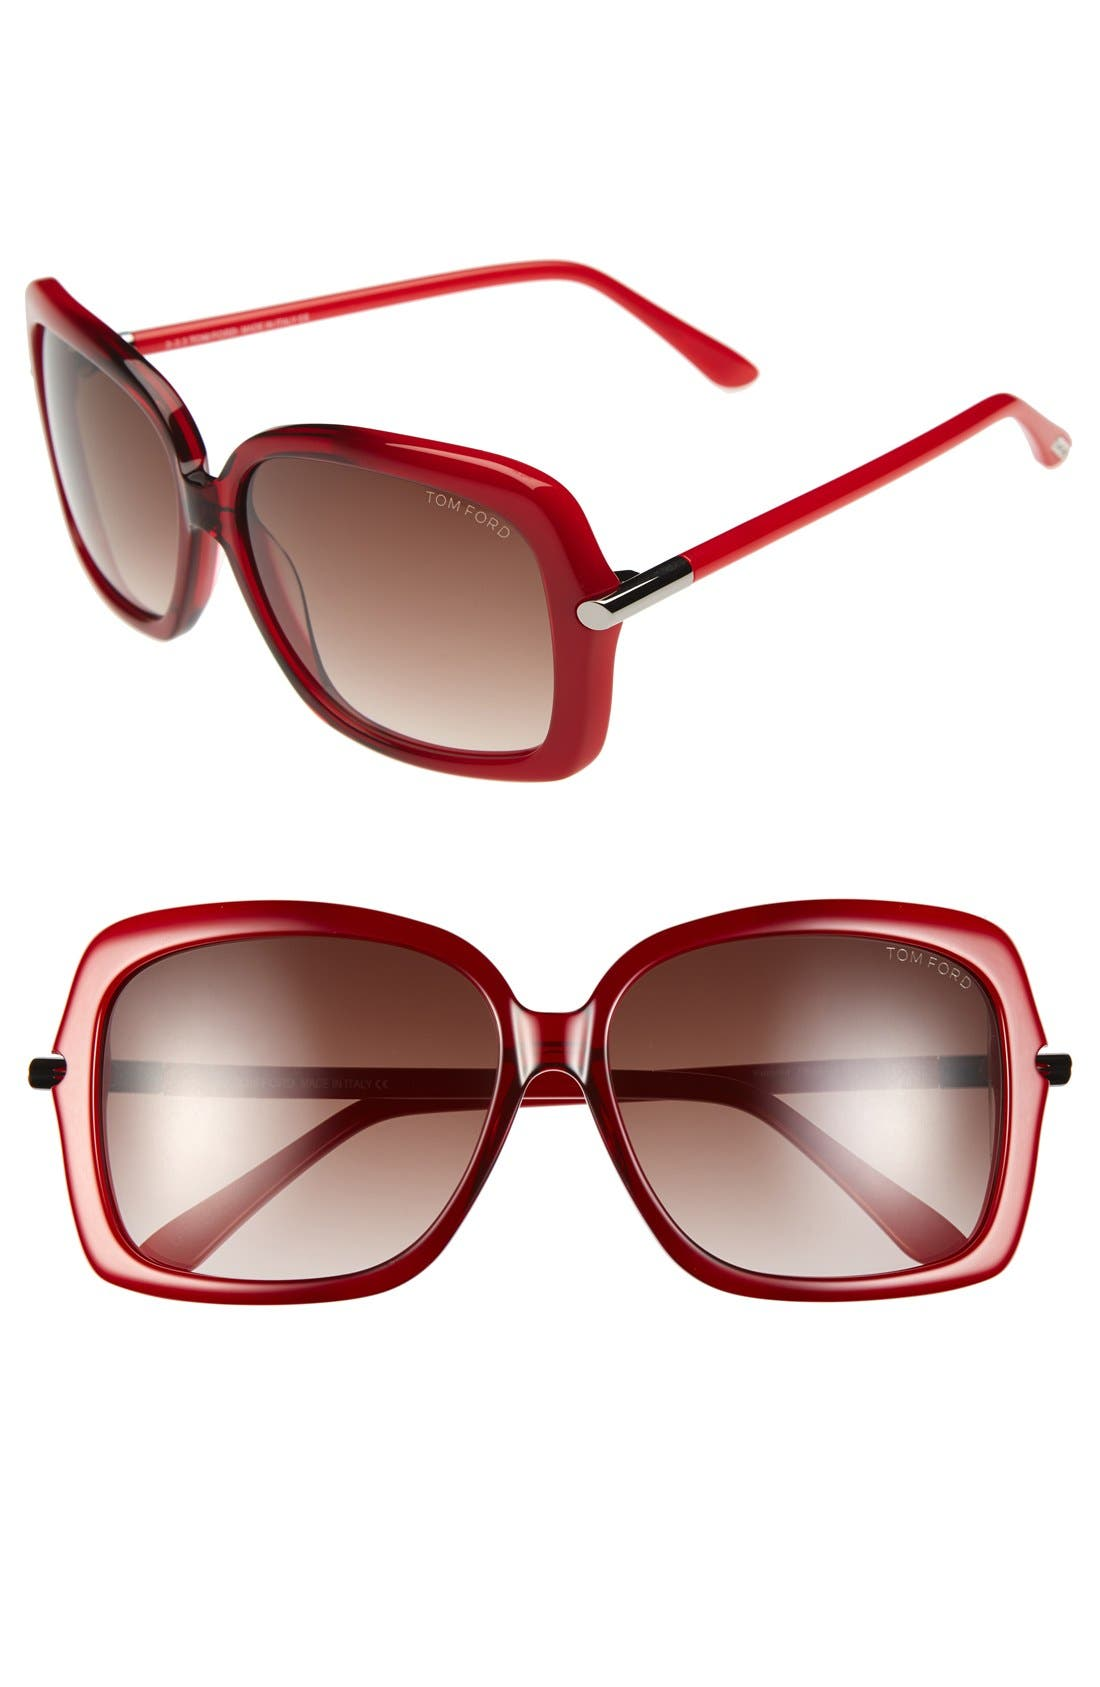 Alternate Image 1 Selected - Tom Ford 'Paloma' 59mm Sunglasses